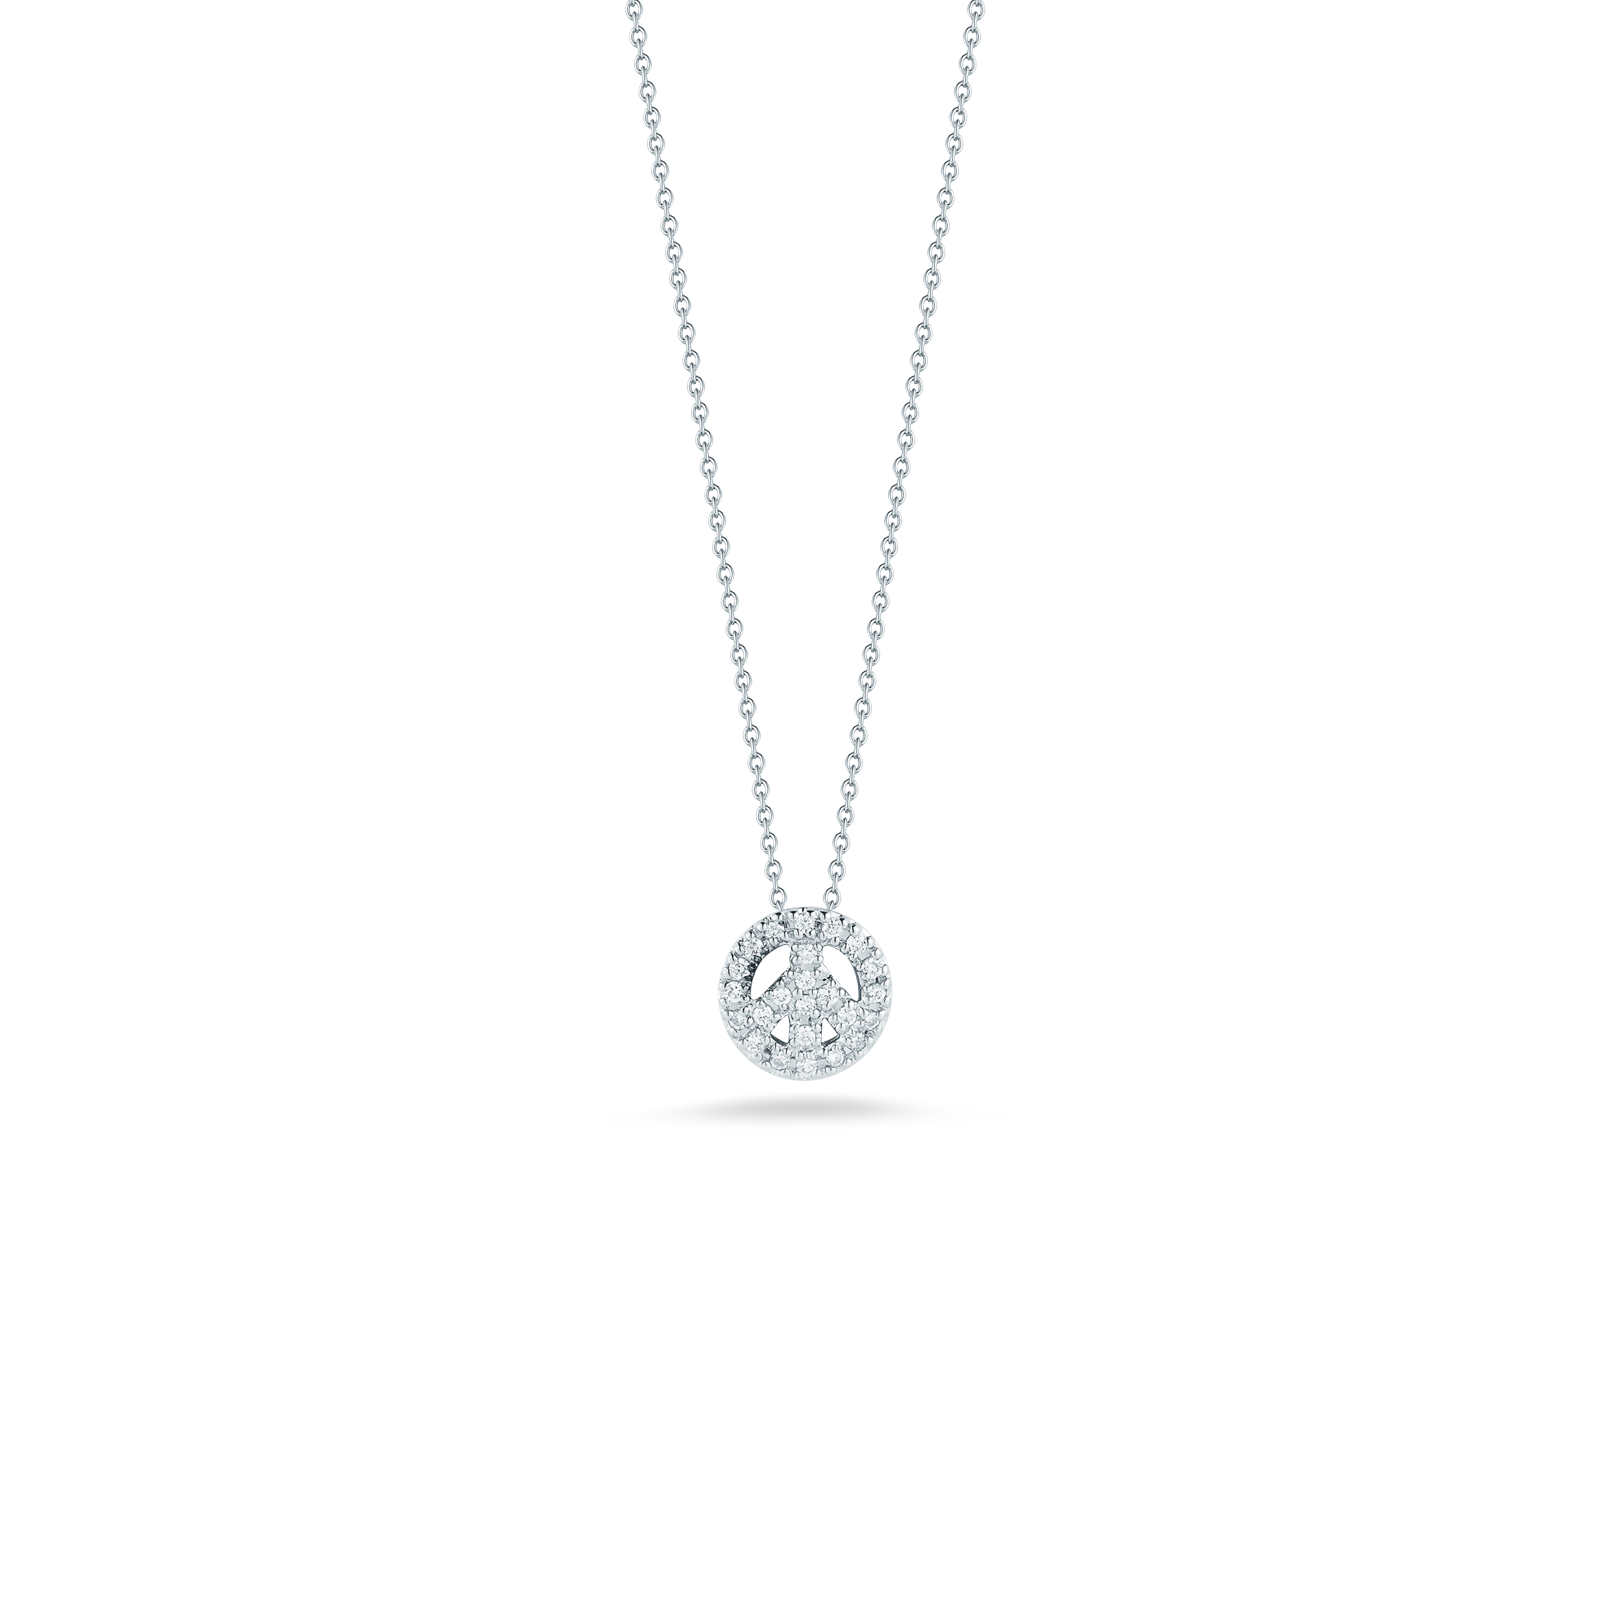 peace sign necklace png